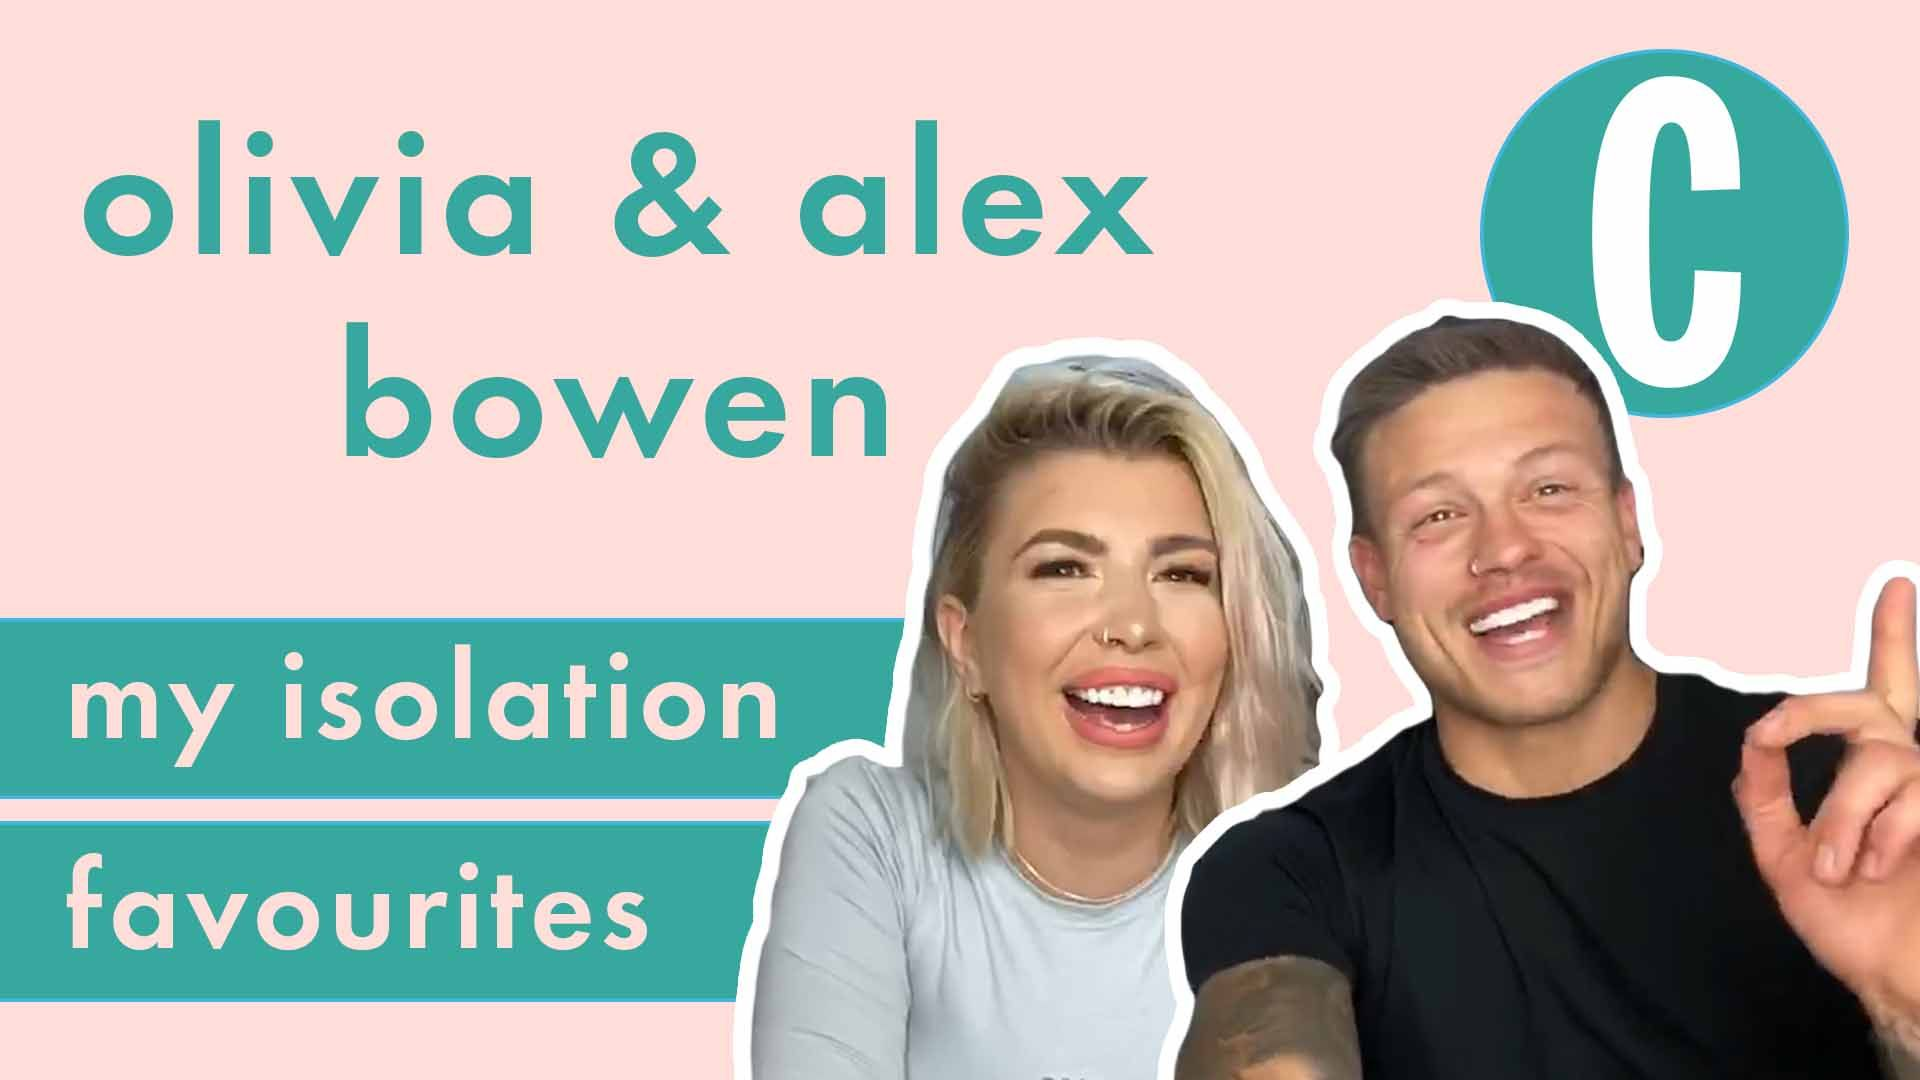 Love Island's Alex and Olivia Bowen share their isolation favourites